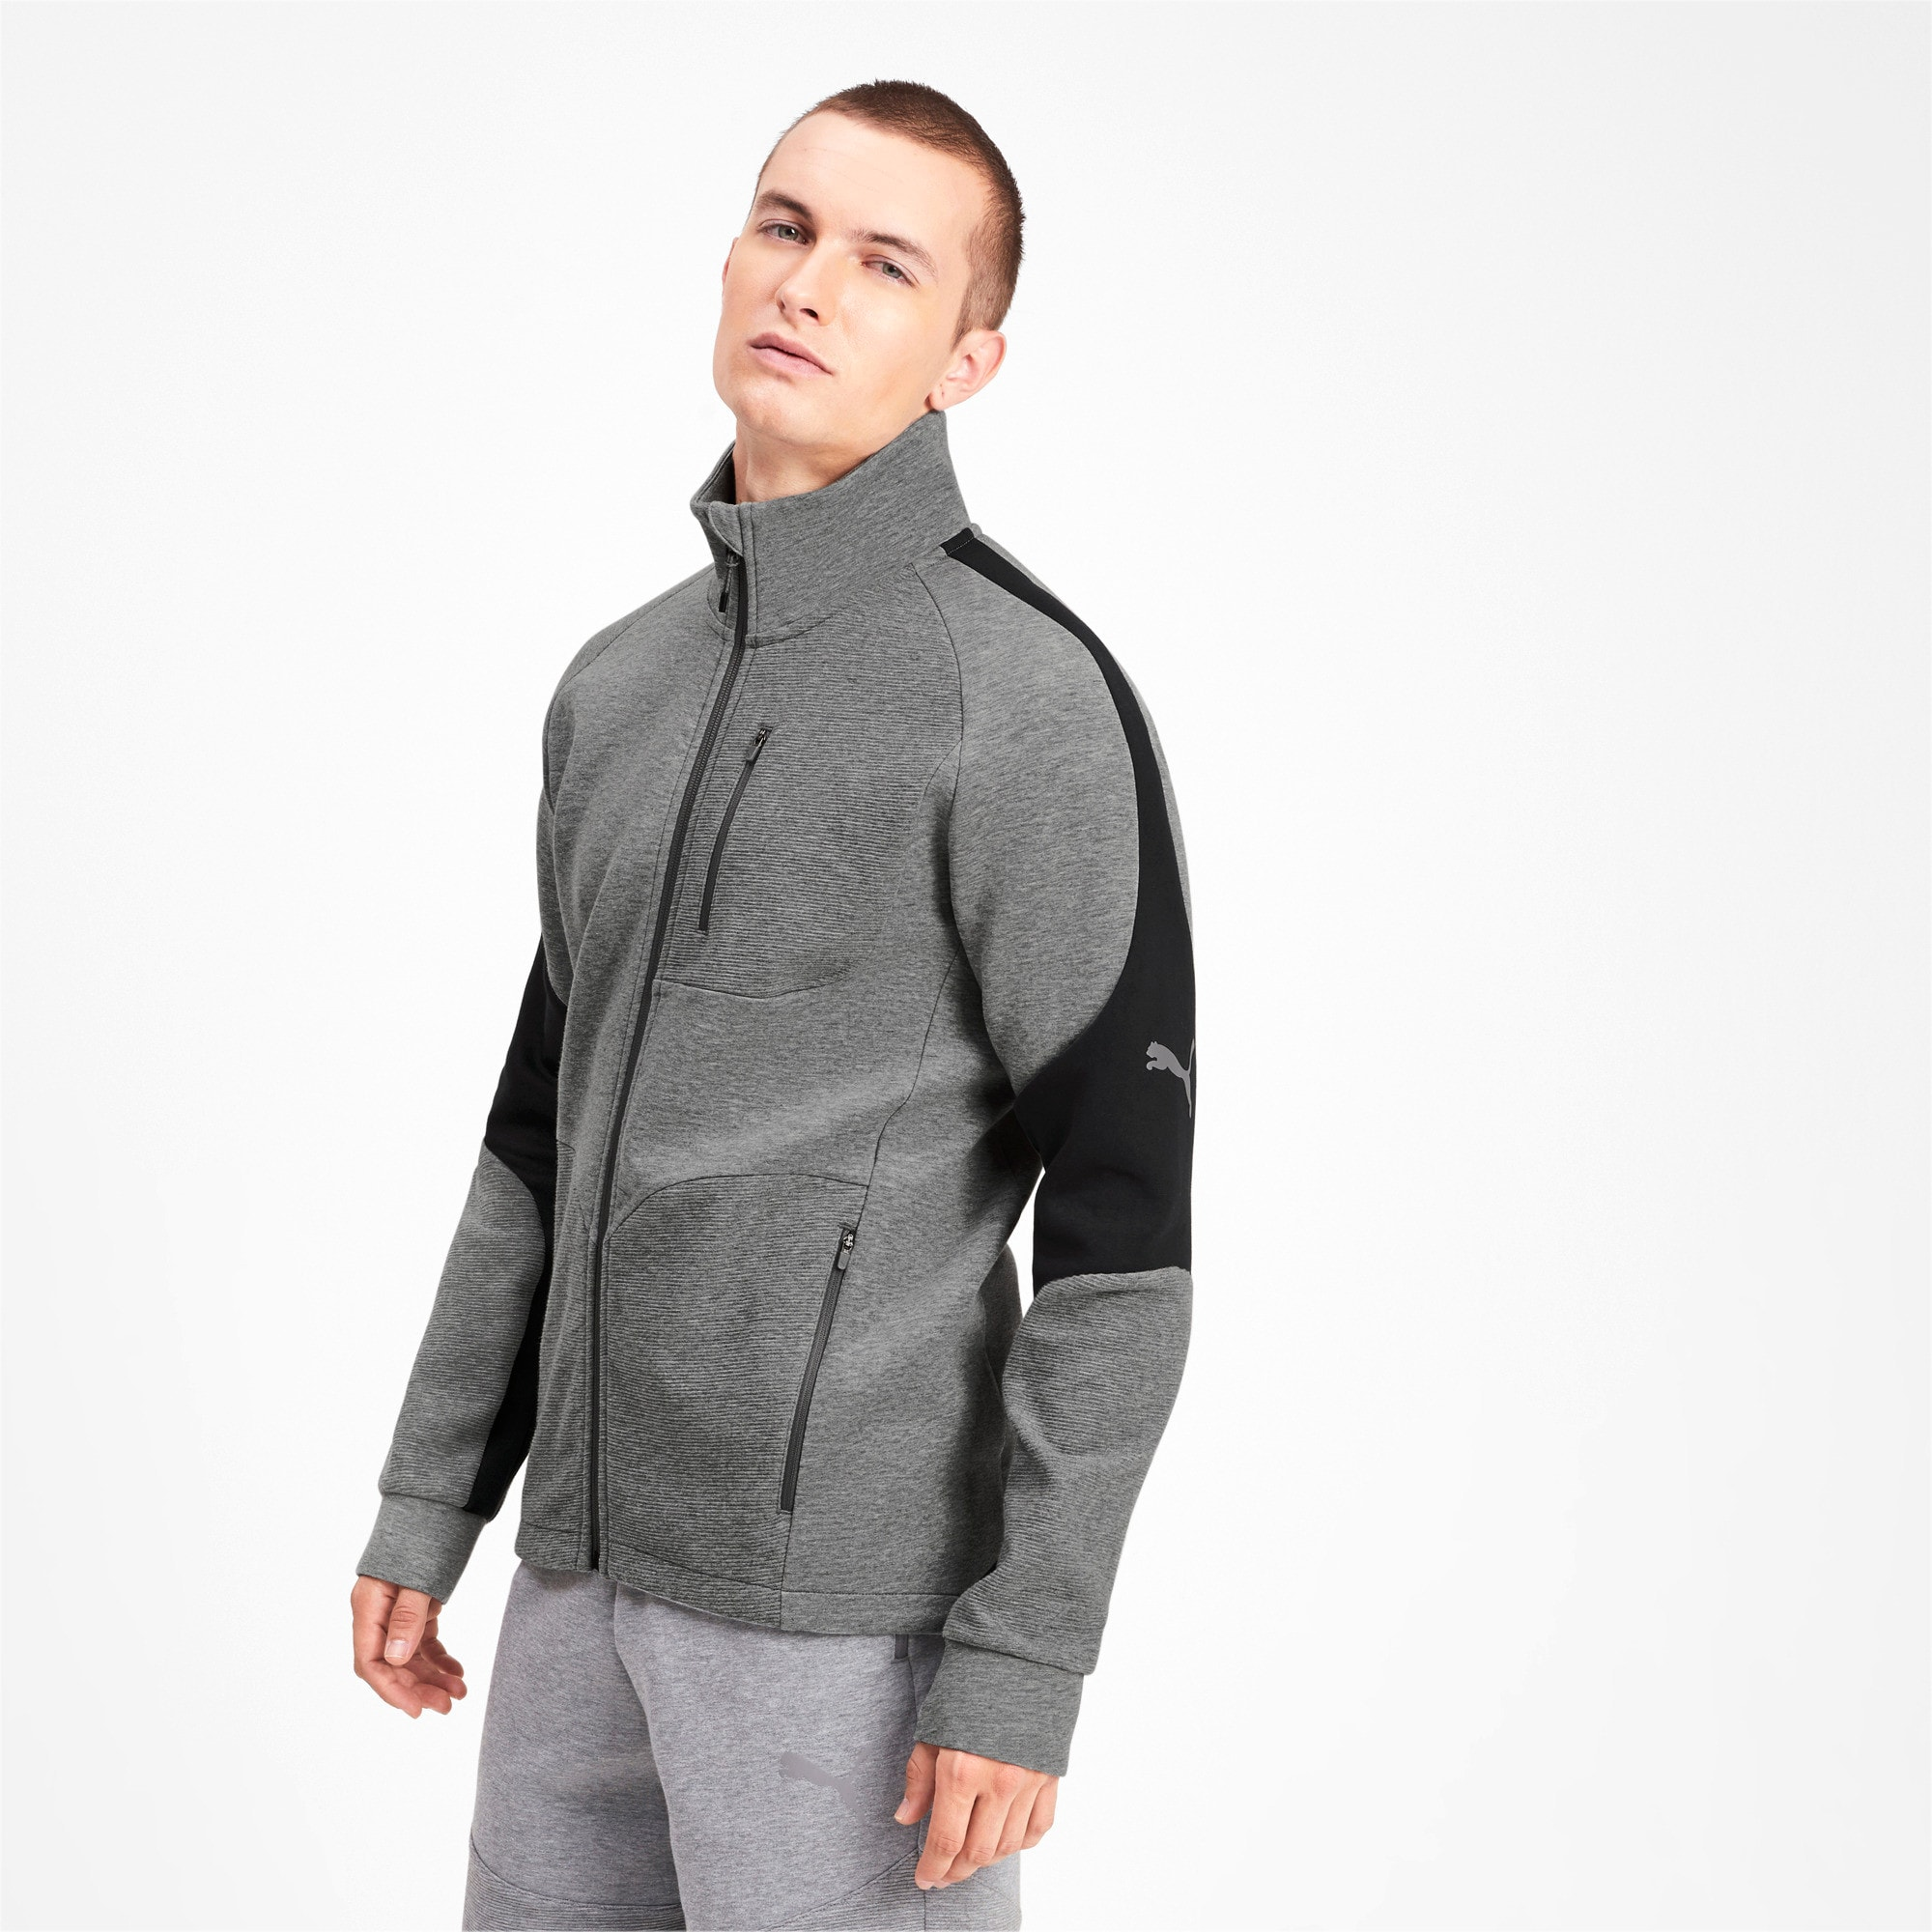 Miniatura 1 de Chaqueta Evostripe para hombre, Medium Gray Heather, mediano